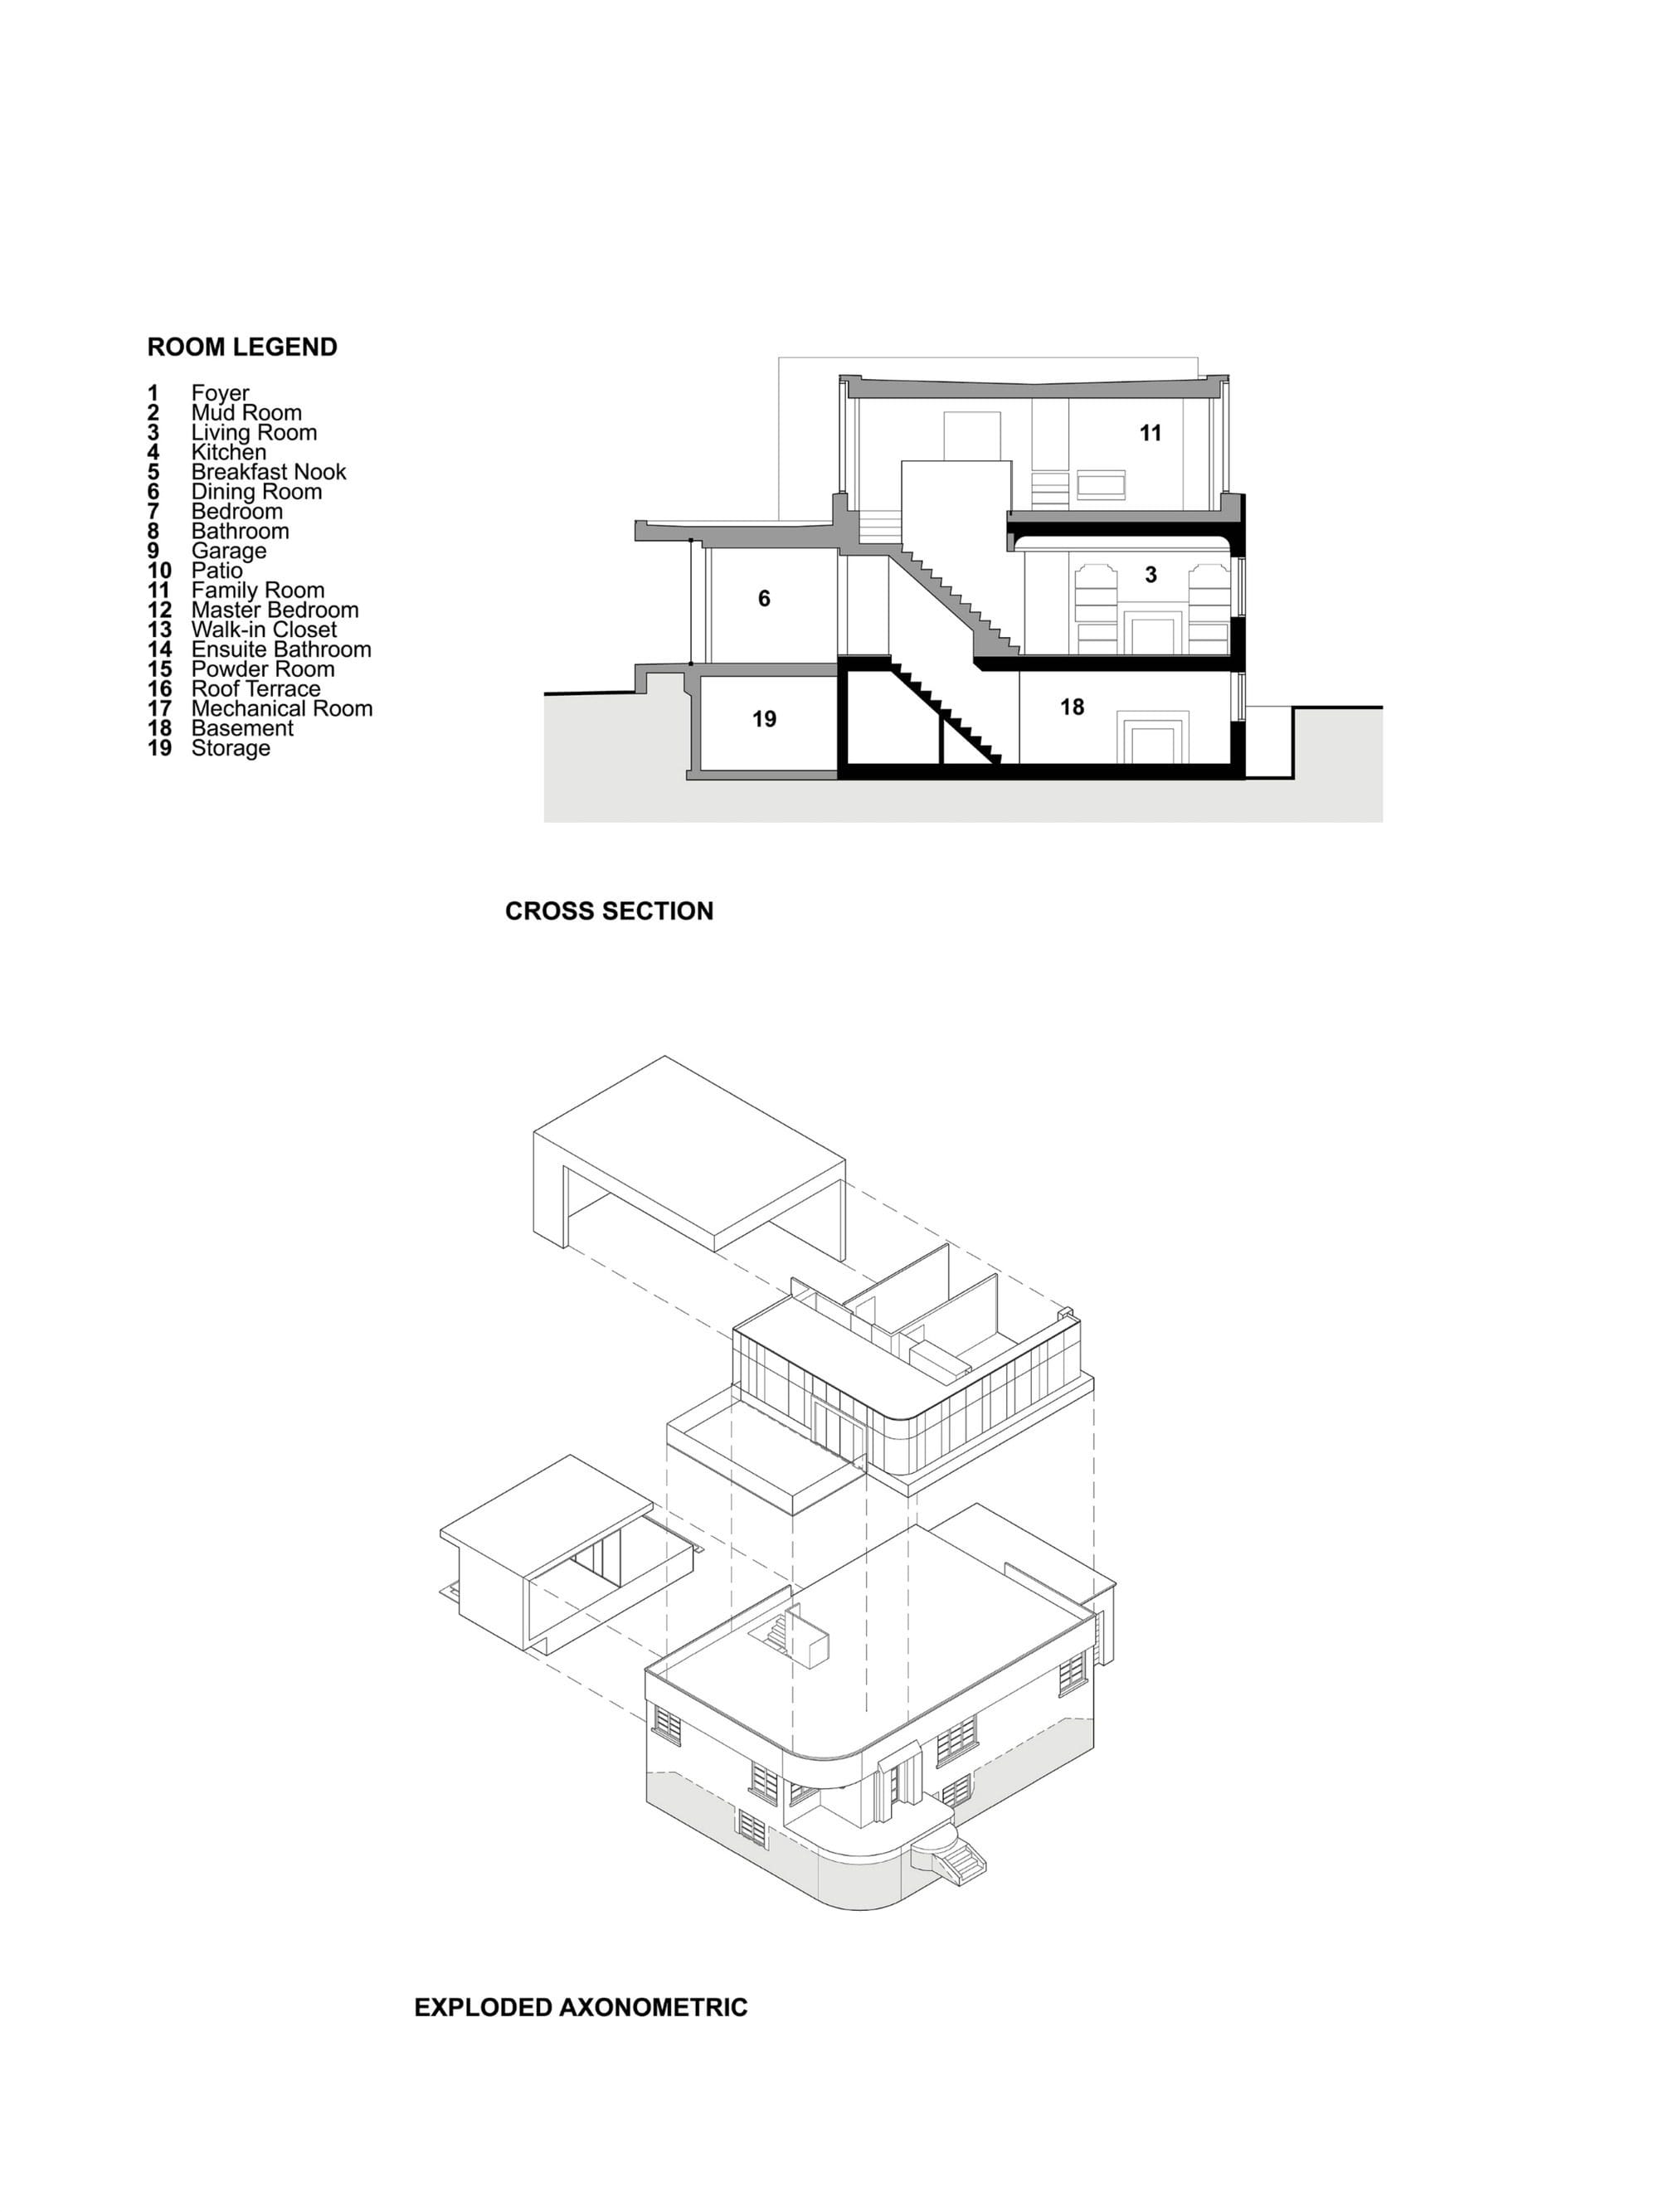 Частная резиденция The Hambly House в Гамильтоне, Канада, HQ architecture, HQarch, HQ arch, high quality architecture